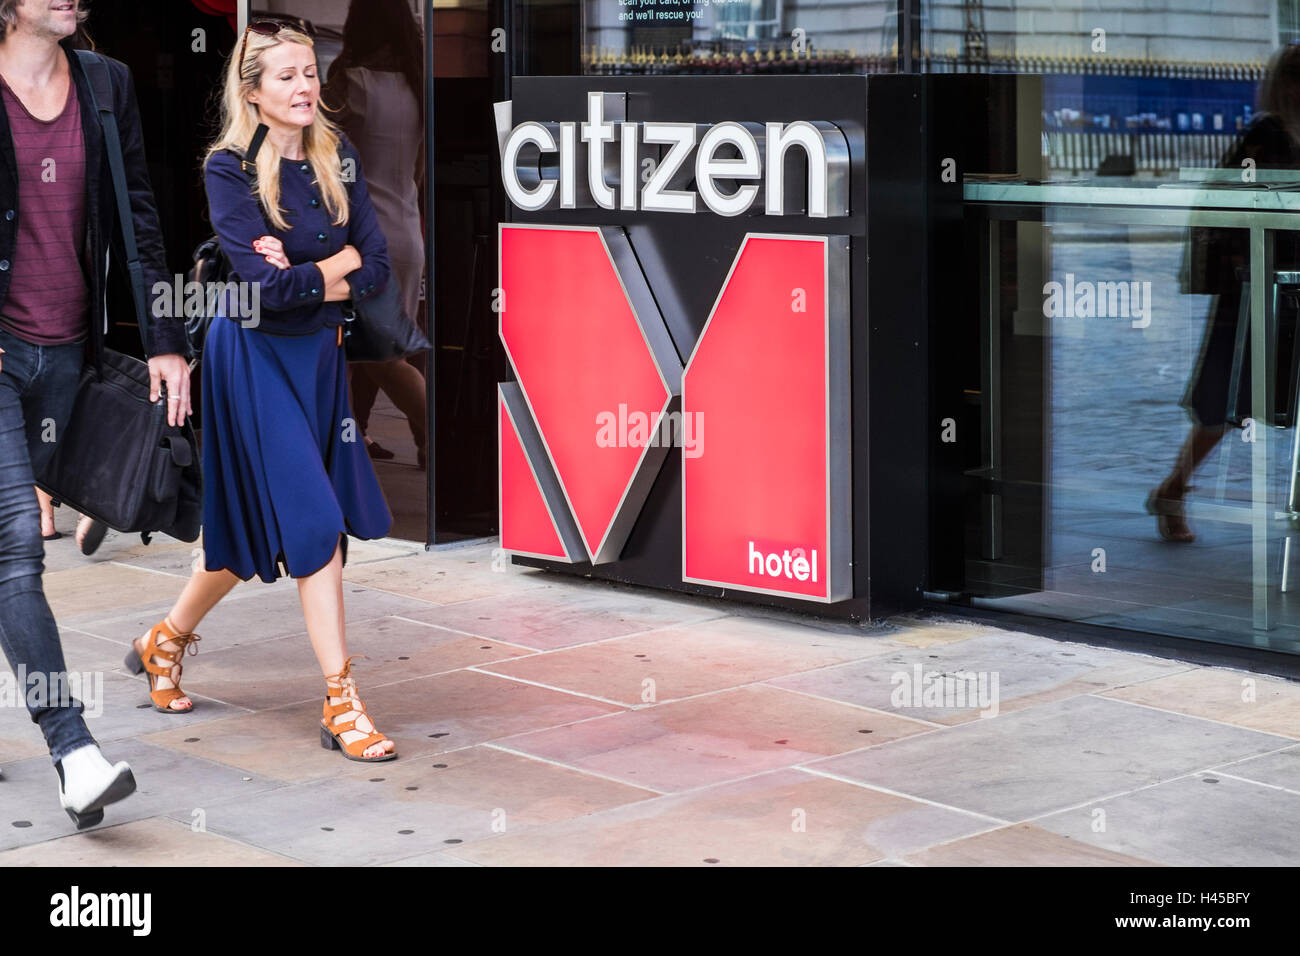 Citizen M Hotel Logo, London, England, U.K Stockfoto